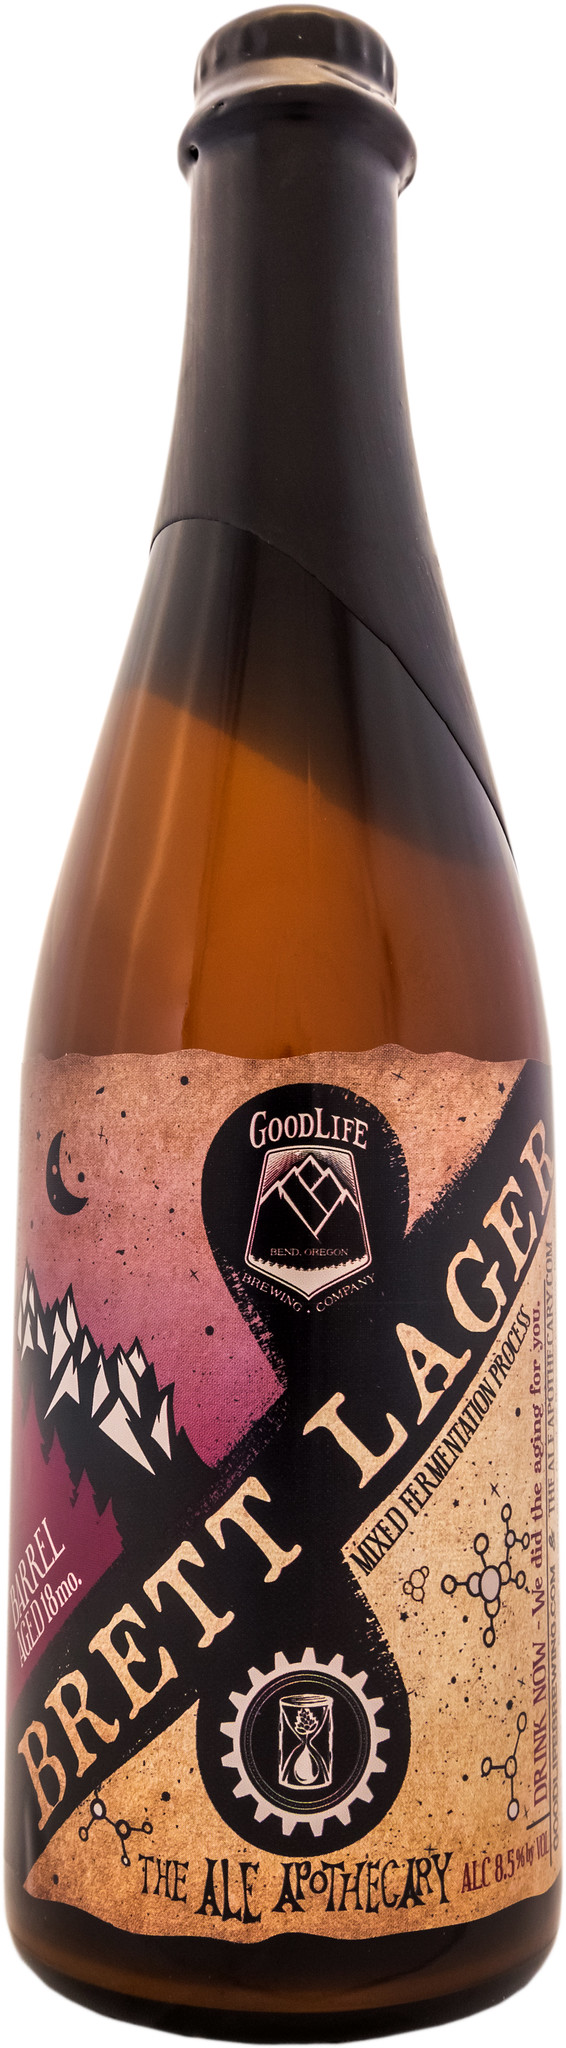 image courtesy The Ale Apothecary and GoodLife Brewing